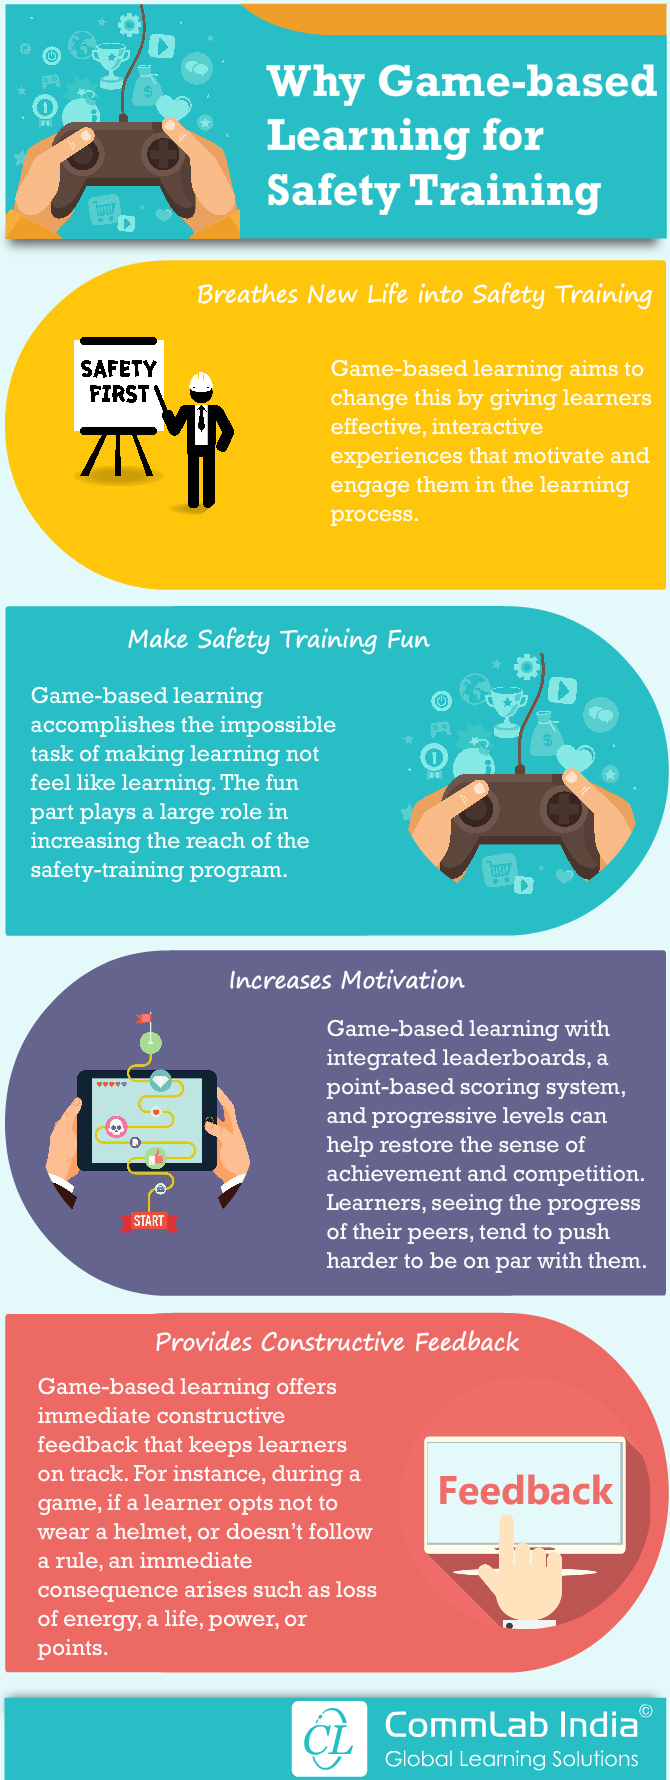 Game-based Learning for Safety Training